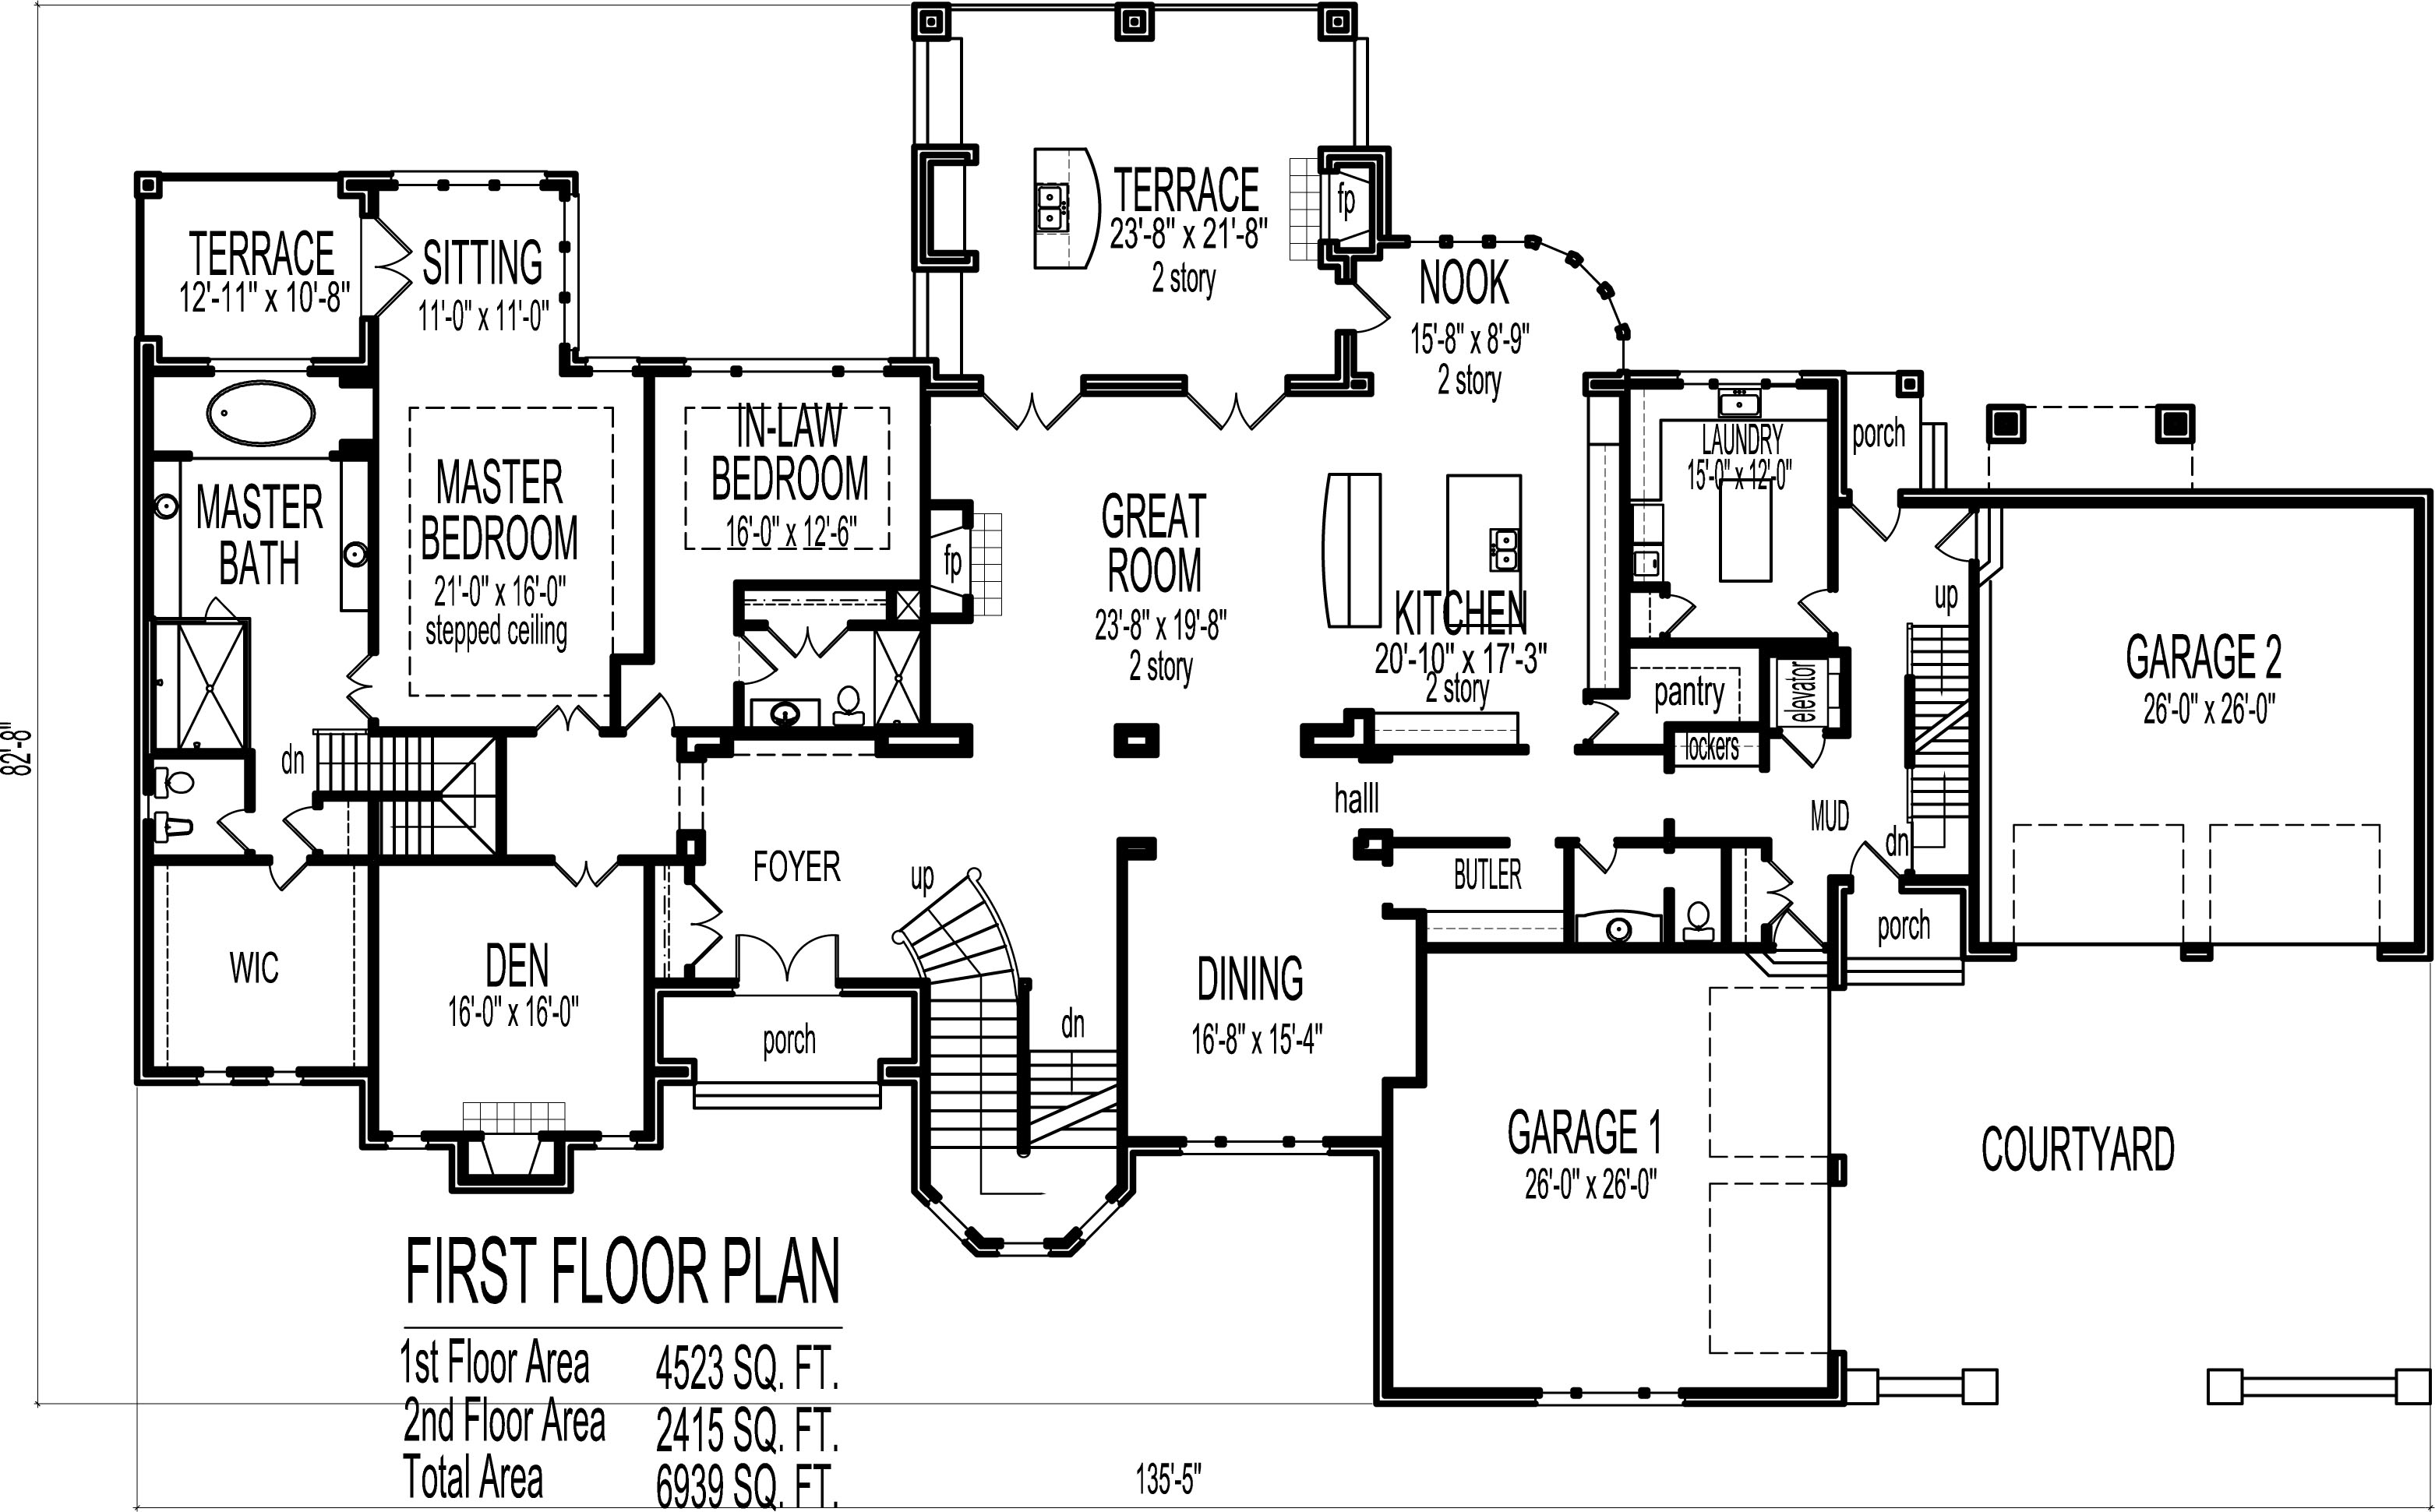 Mansion house floor plans blueprints 6 bedroom 2 story for 6 bedroom 6 bathroom house plans